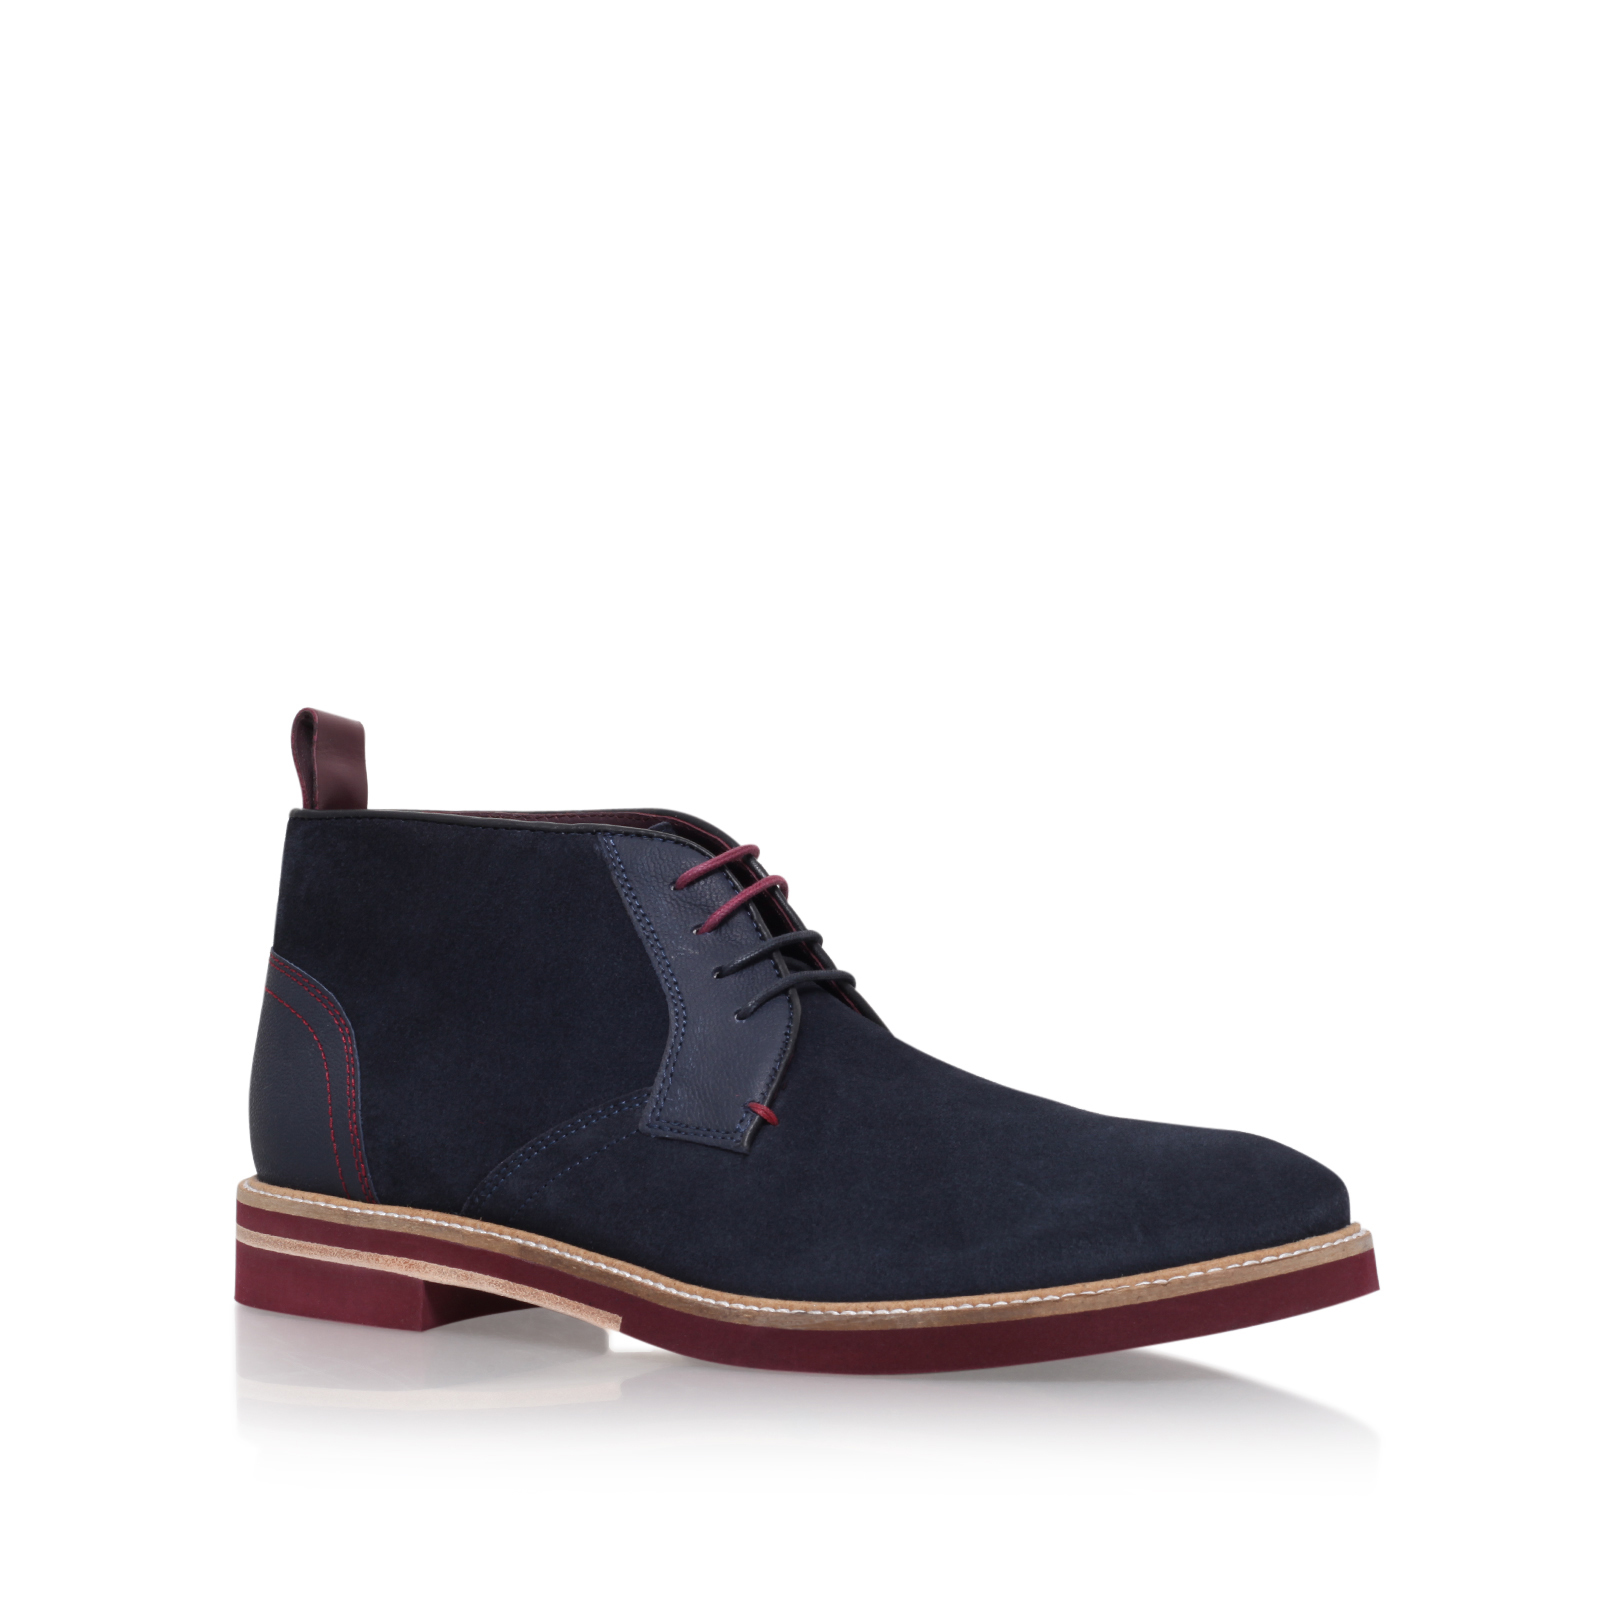 SUEDE CONTRAST SOLE BOOT